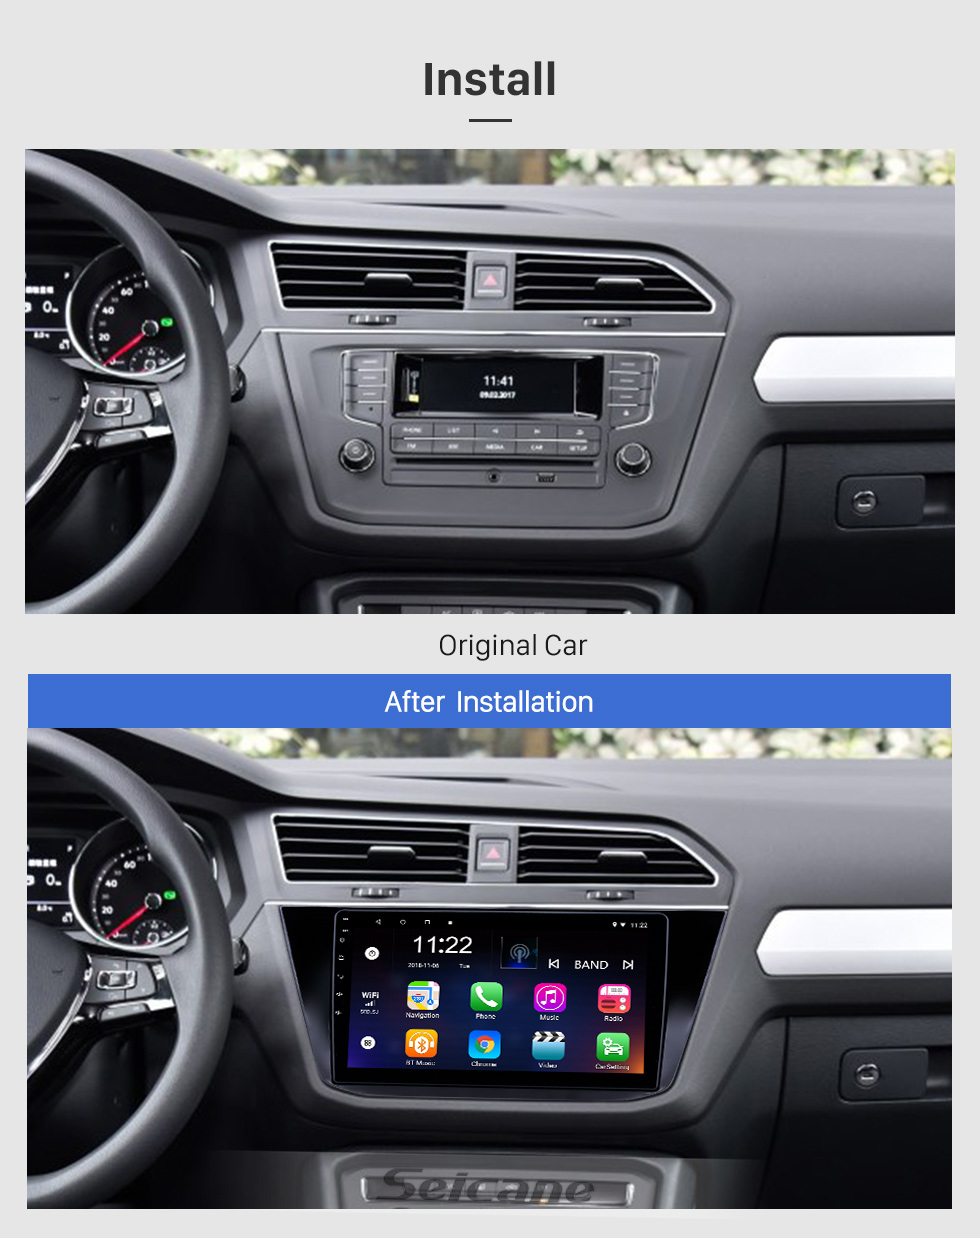 Seicane 10,1 pouces Android 8.1 Radio de navigation GPS pour 2016-2018 VW Volkswagen Tiguan avec écran tactile Bluetooth support USB Carplay TPMS